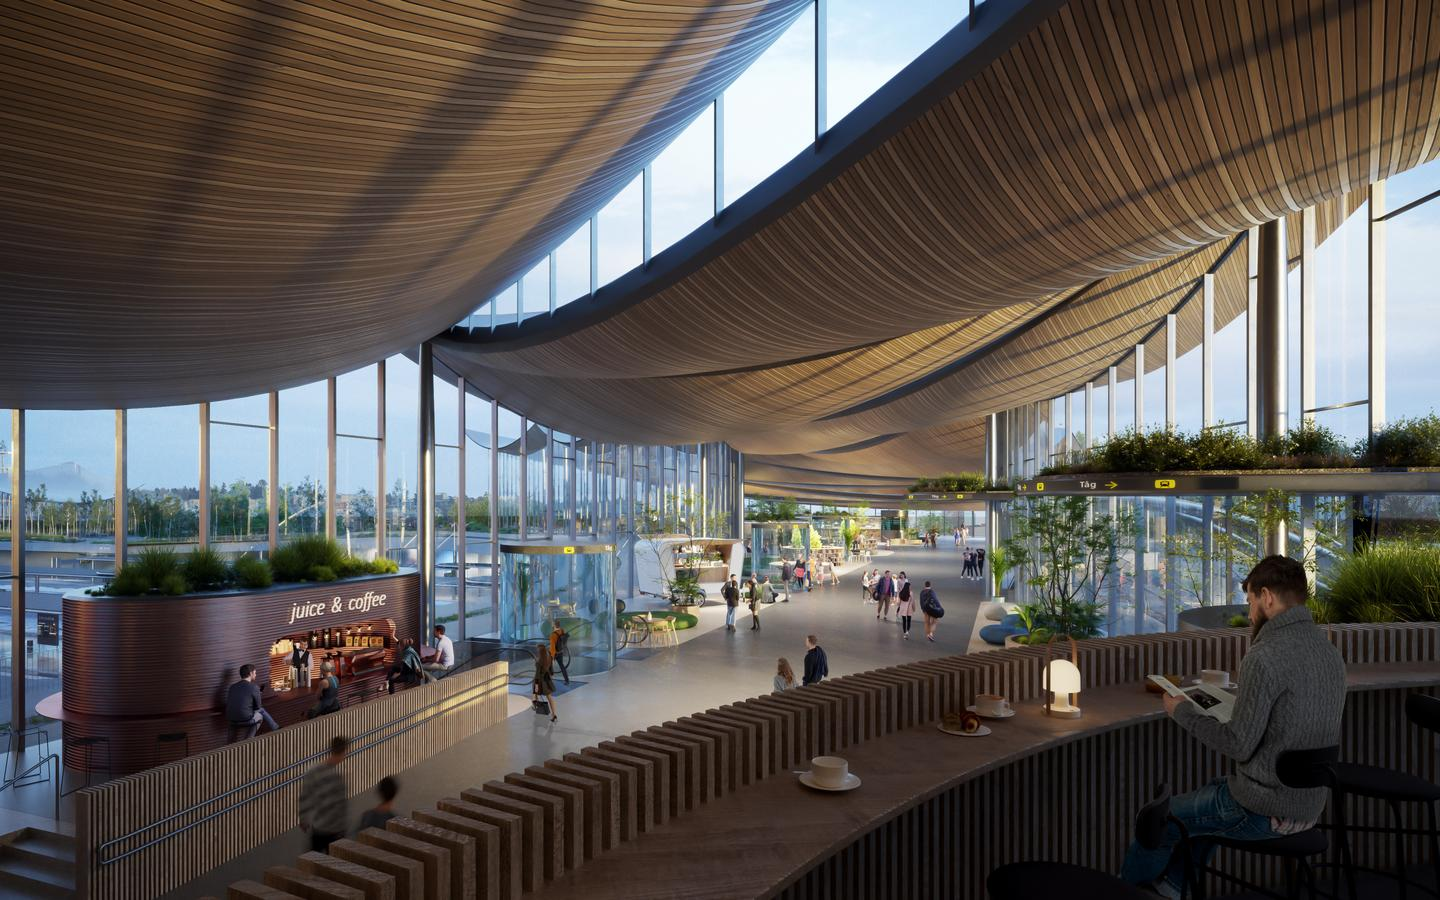 The Västerås Travel Center will incorporate significant greenery, both on the roof and inside the building